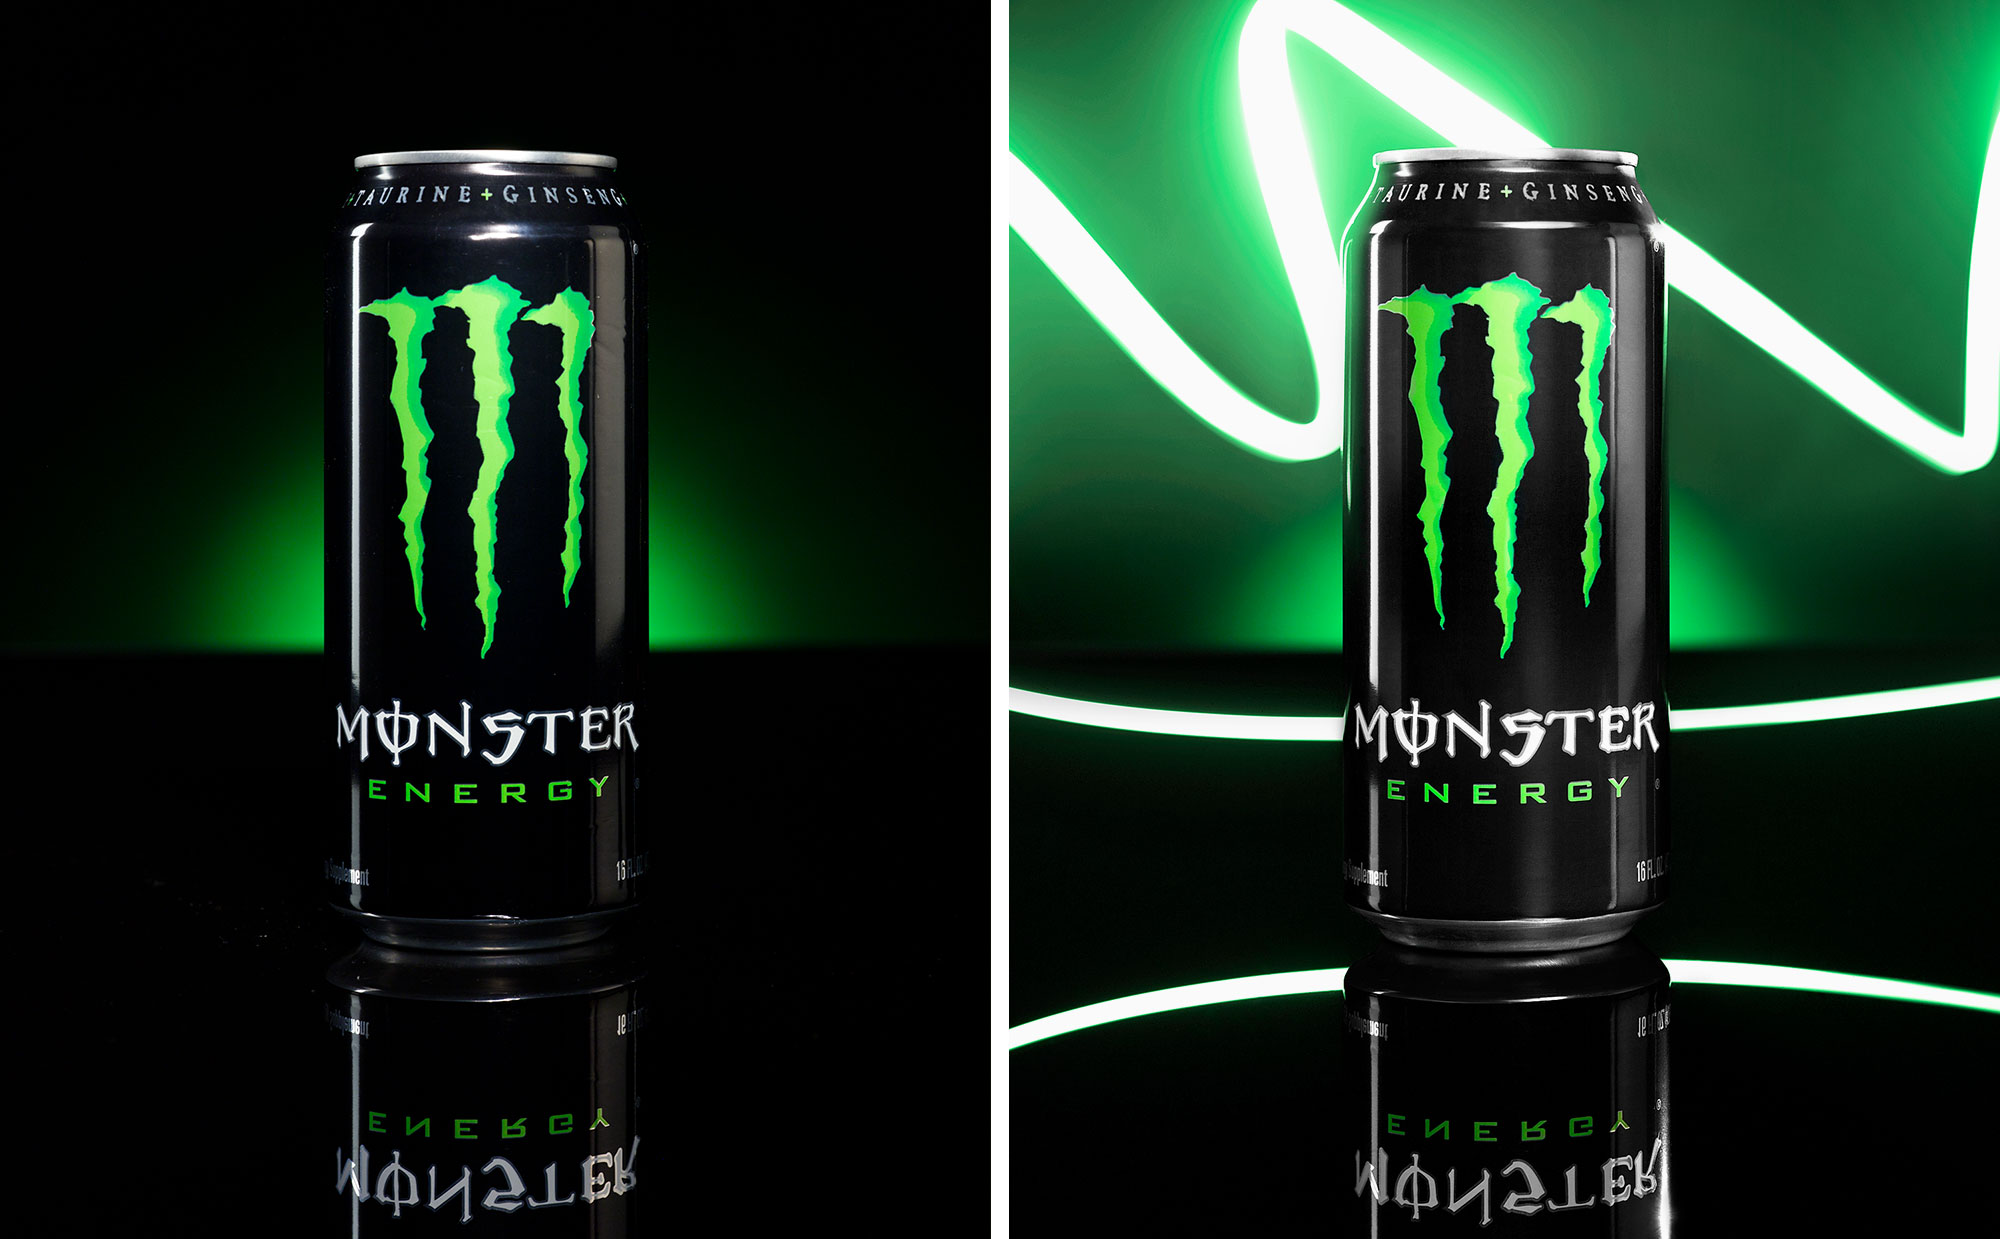 Professional Retouching I: Monster Energy Drink by Alex Kay